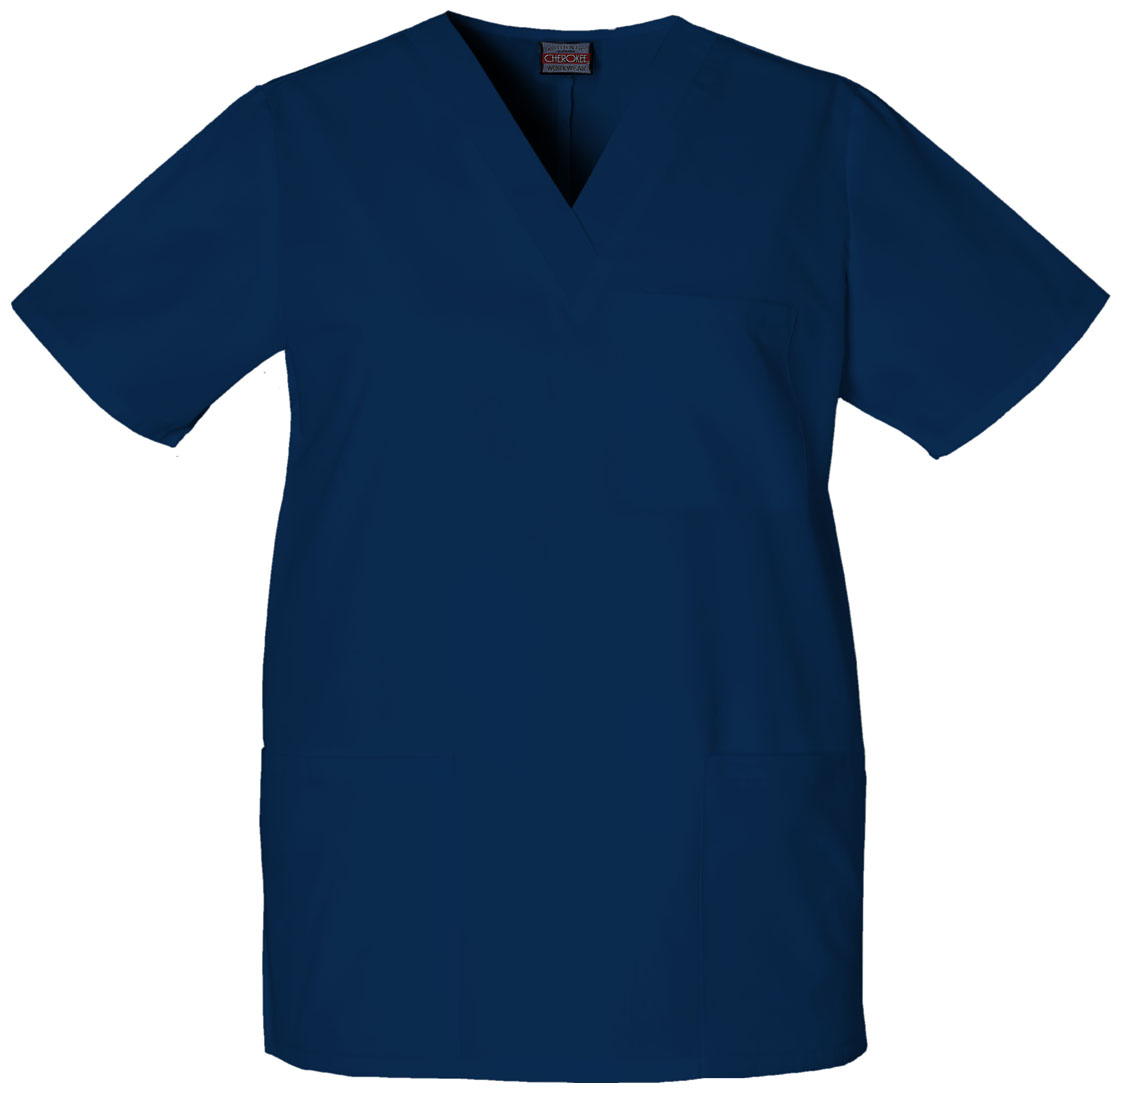 Unisex V Neck Scrub Top-